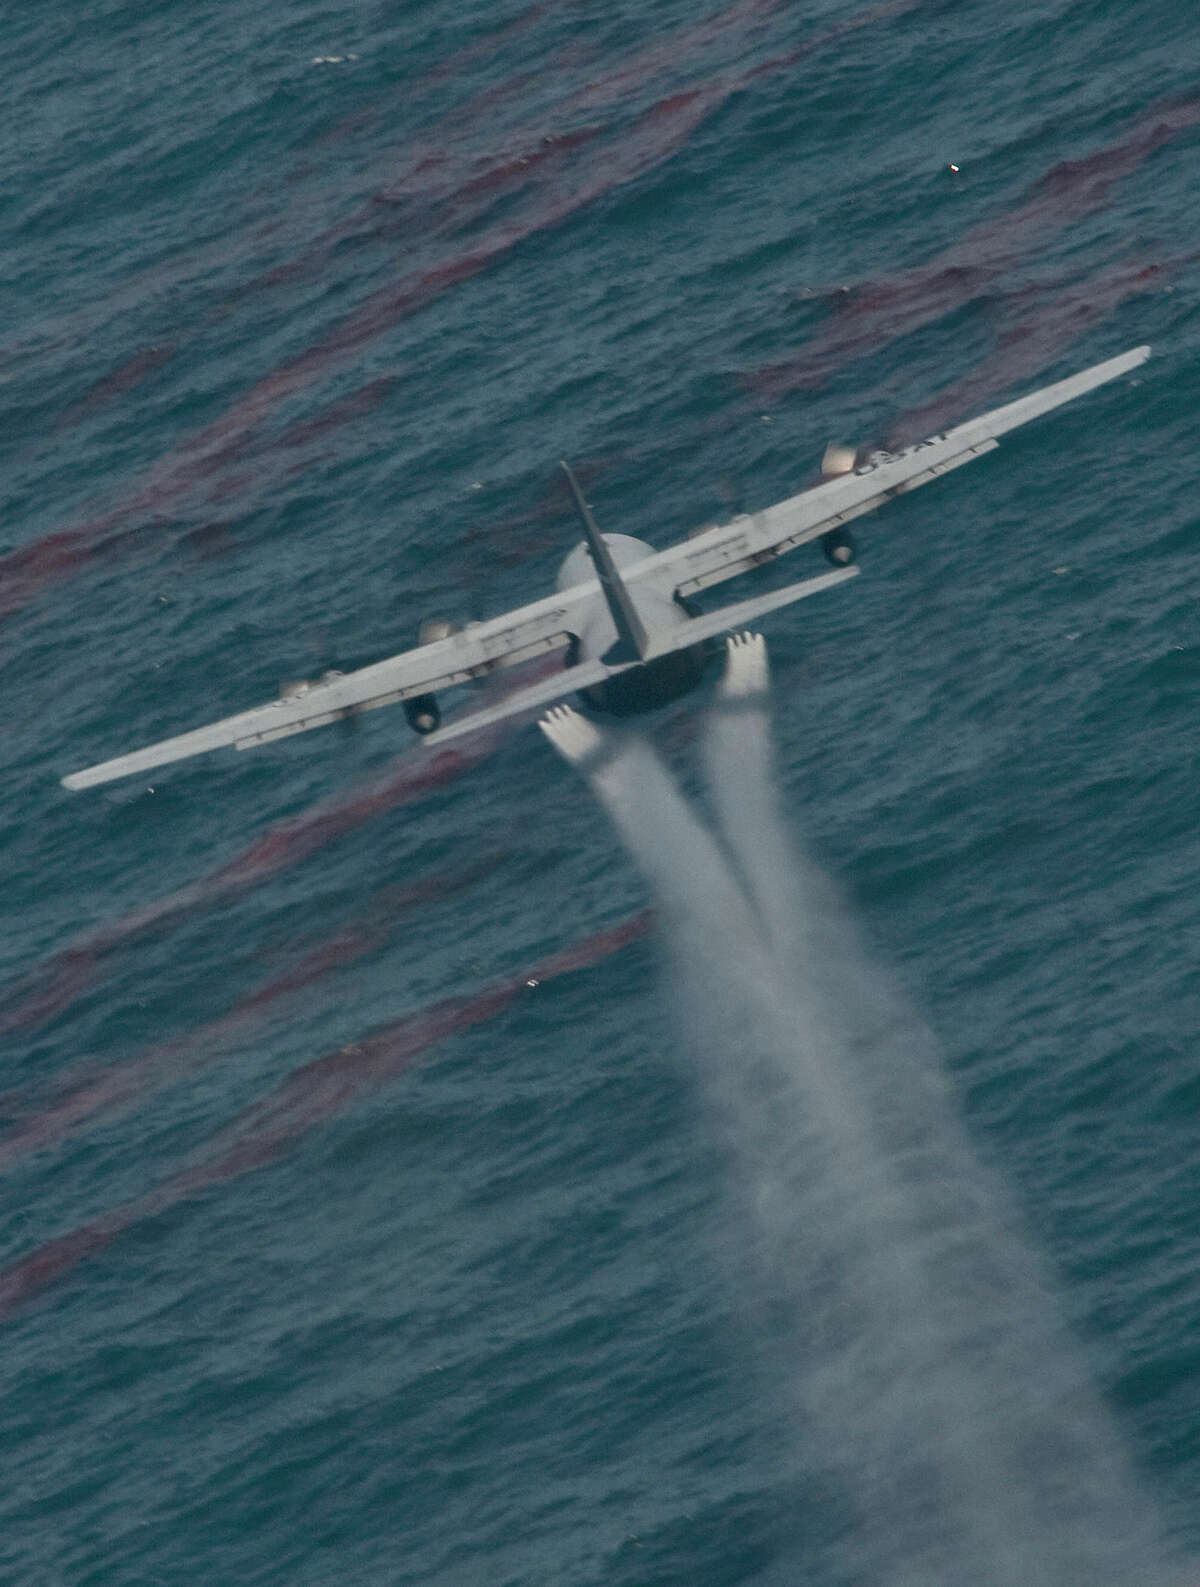 An Air Force C-130 drops oil-dispersing chemicals into the Gulf of Mexico after the April 2010 spill.